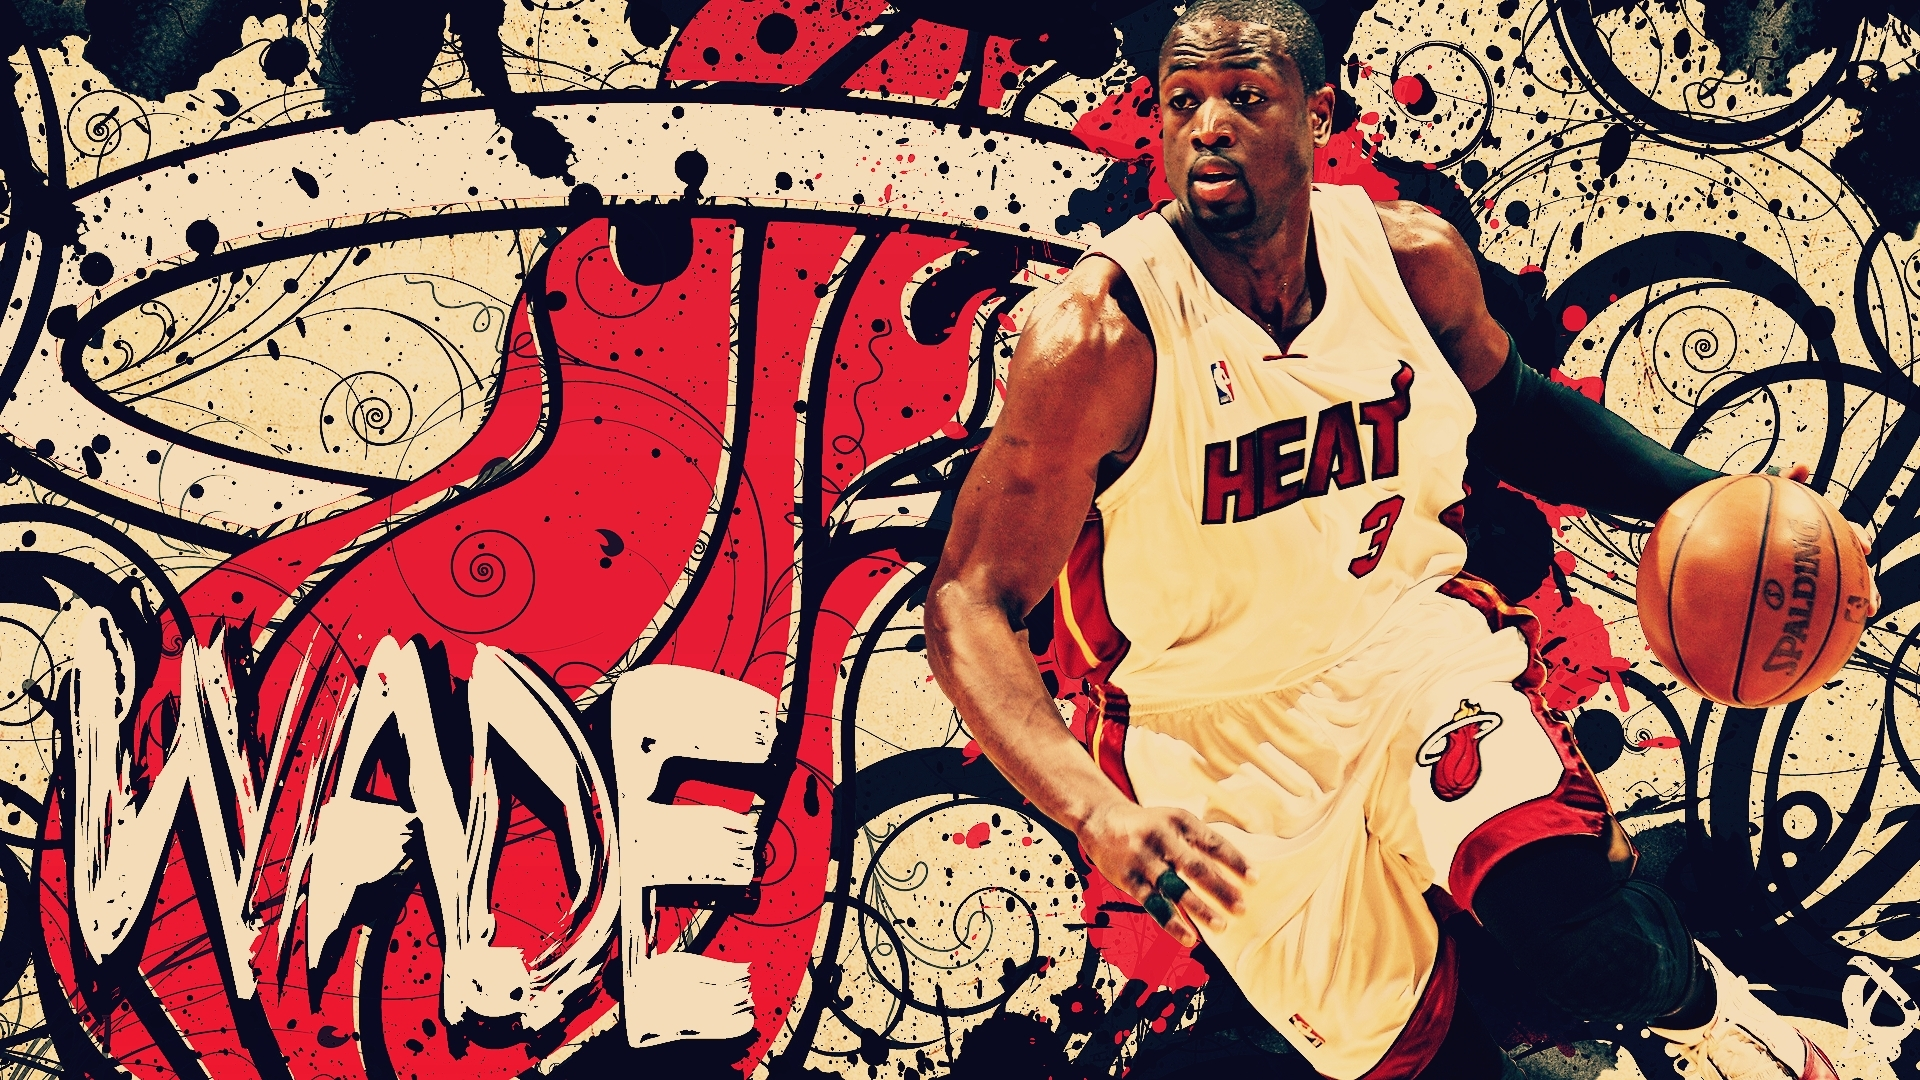 abstract nba basketball dwyane wade miami heat wallpaper background 1920x1080